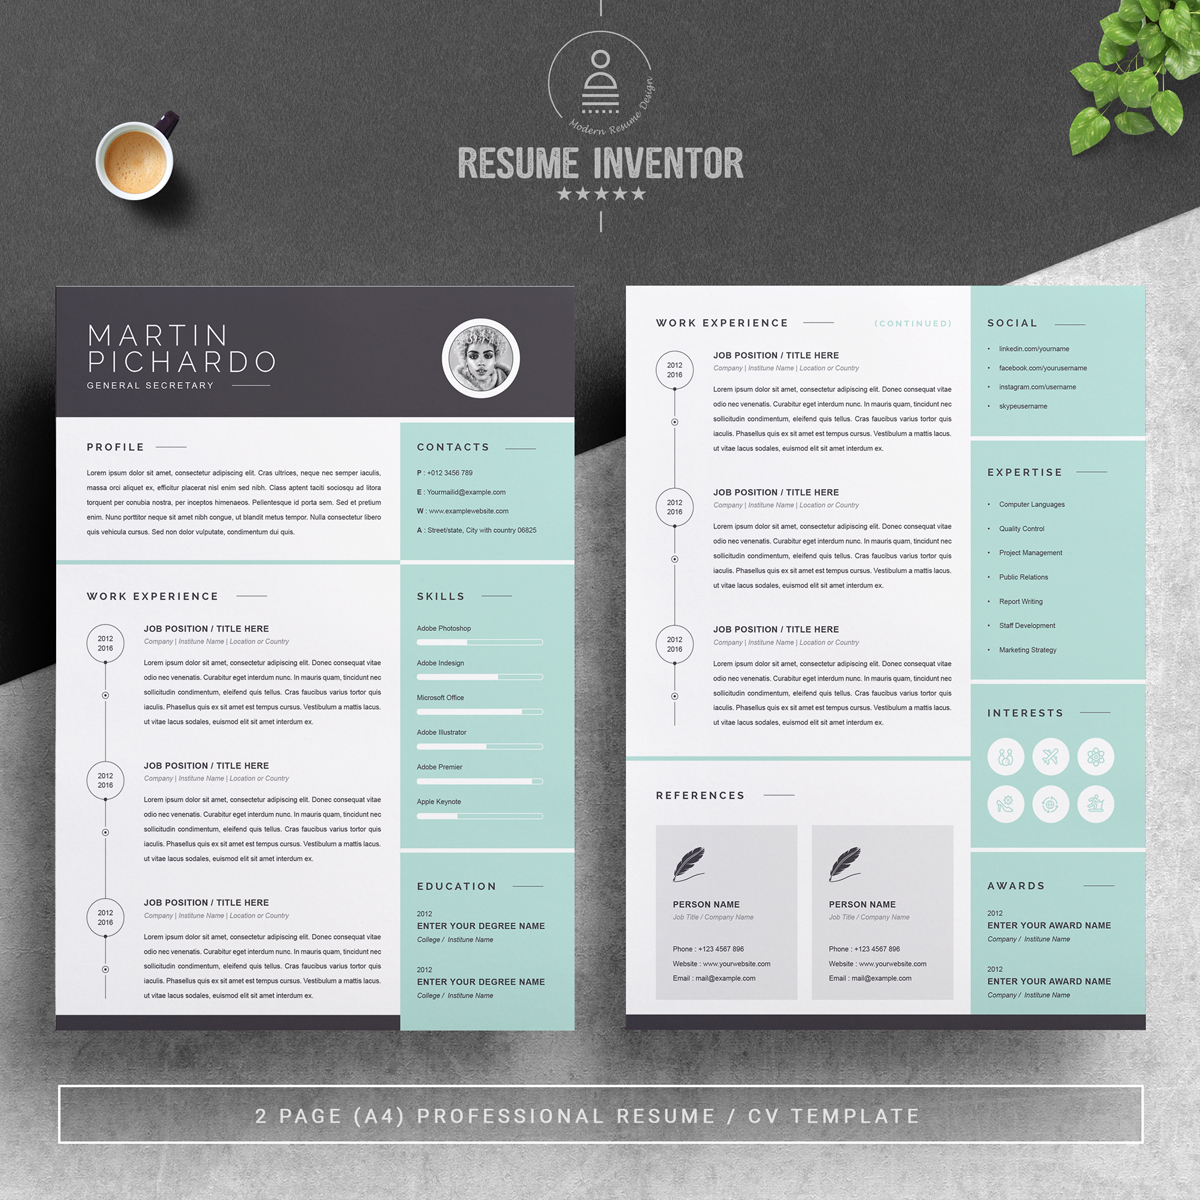 https://s3u.tmimgcdn.com/1860567-1558600379533_02_2-Pages-Free-Resume-Design-Template.jpg